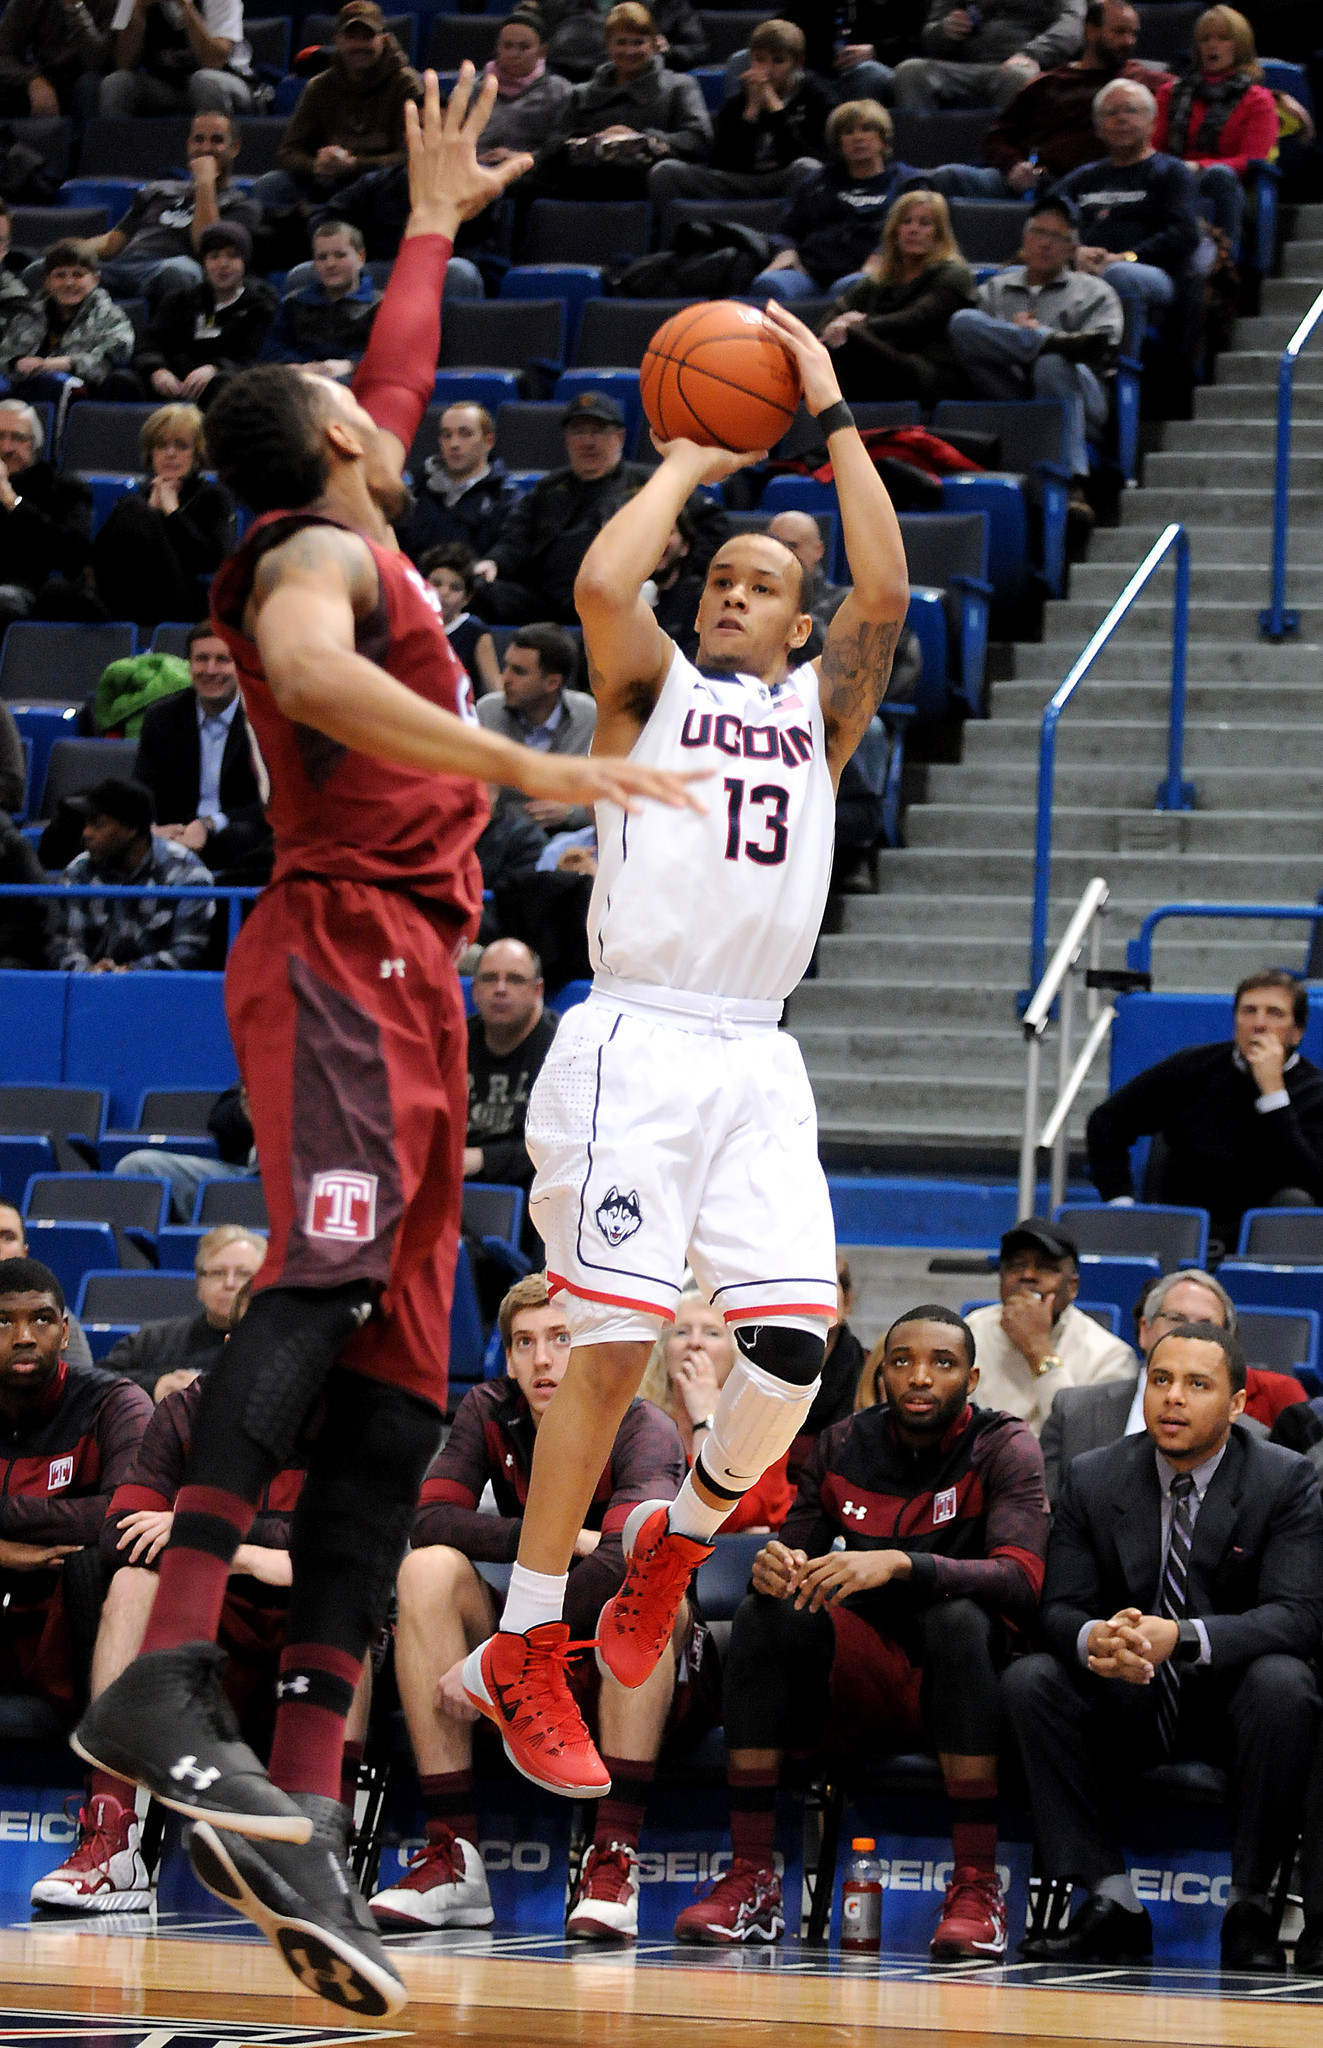 Pictures: UConn Men's Basketball vs. Temple, Jan. 21, 2014 ...